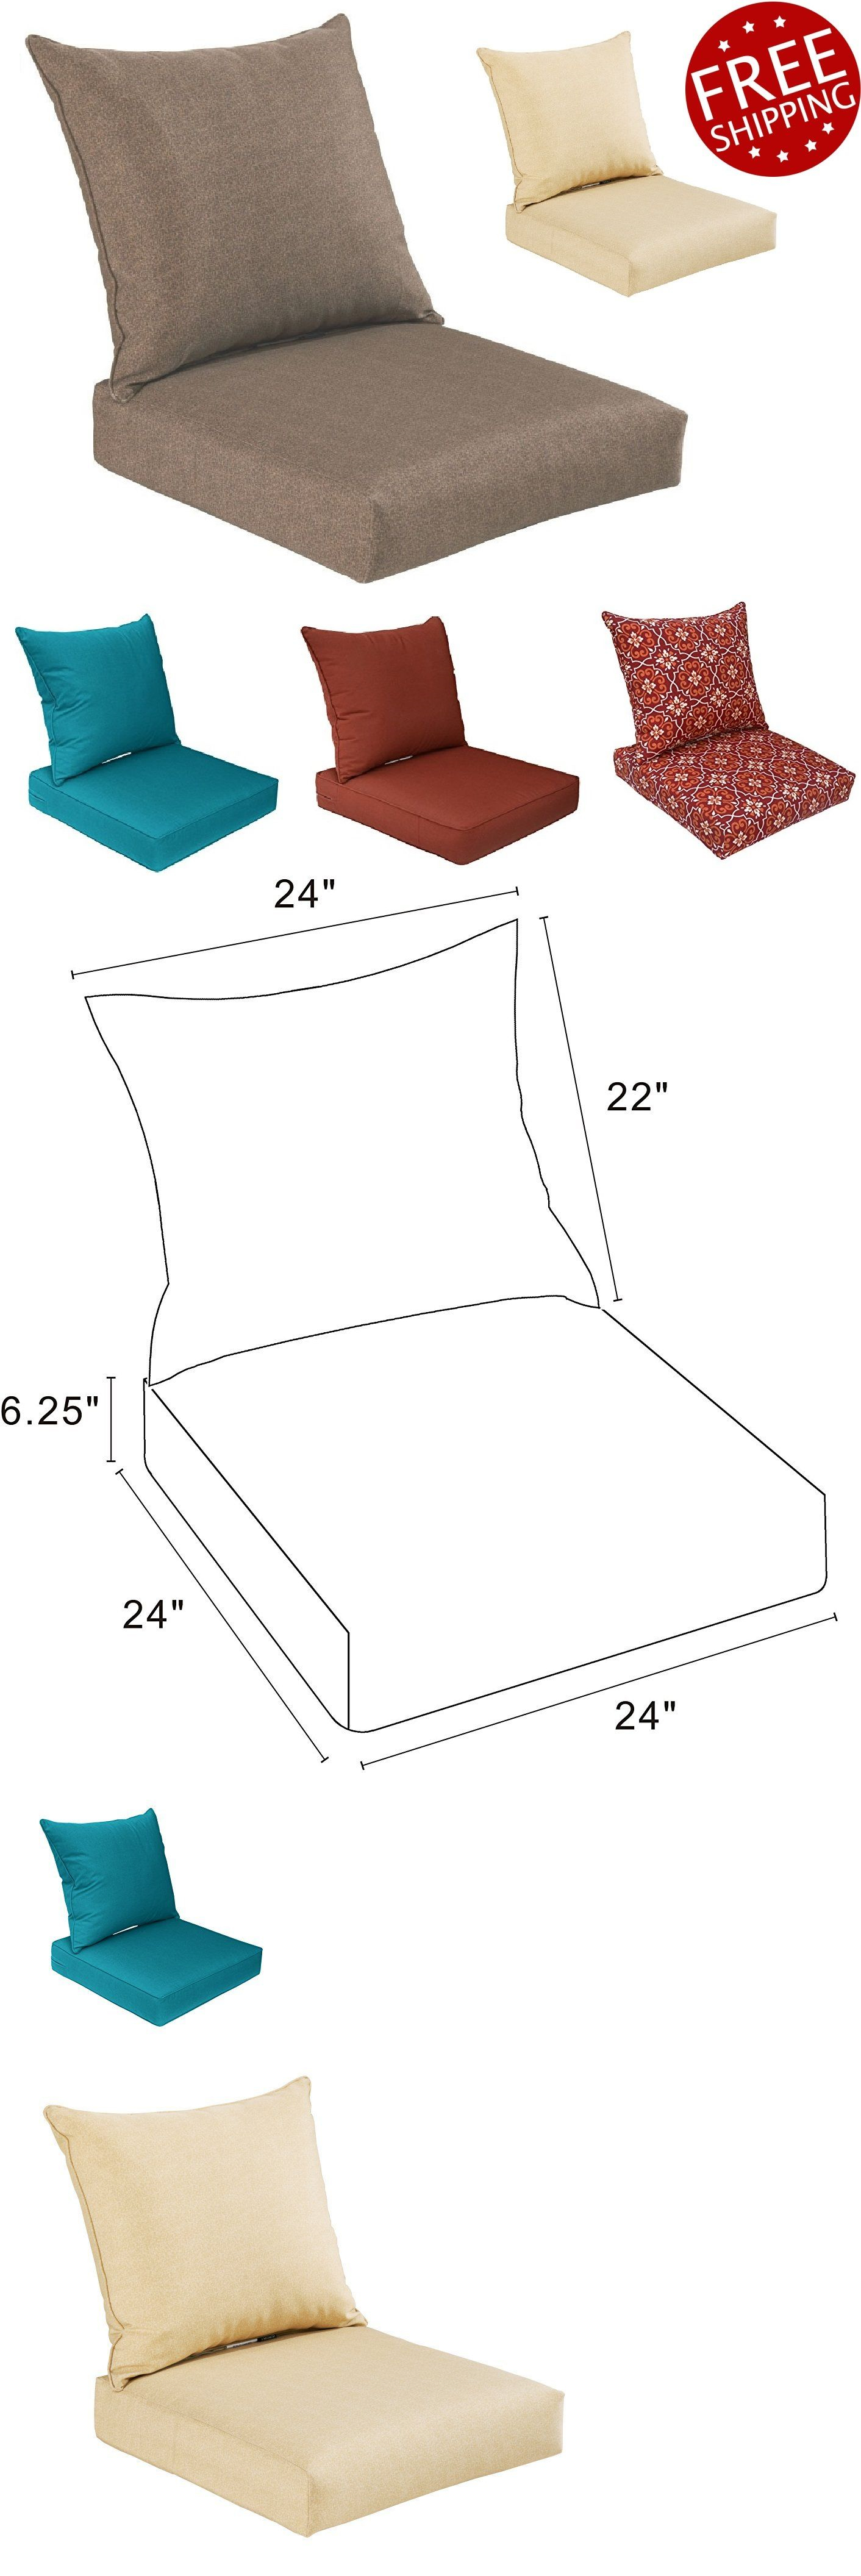 cushions and pads 79683 patio chair cushions outdoor canvas deep